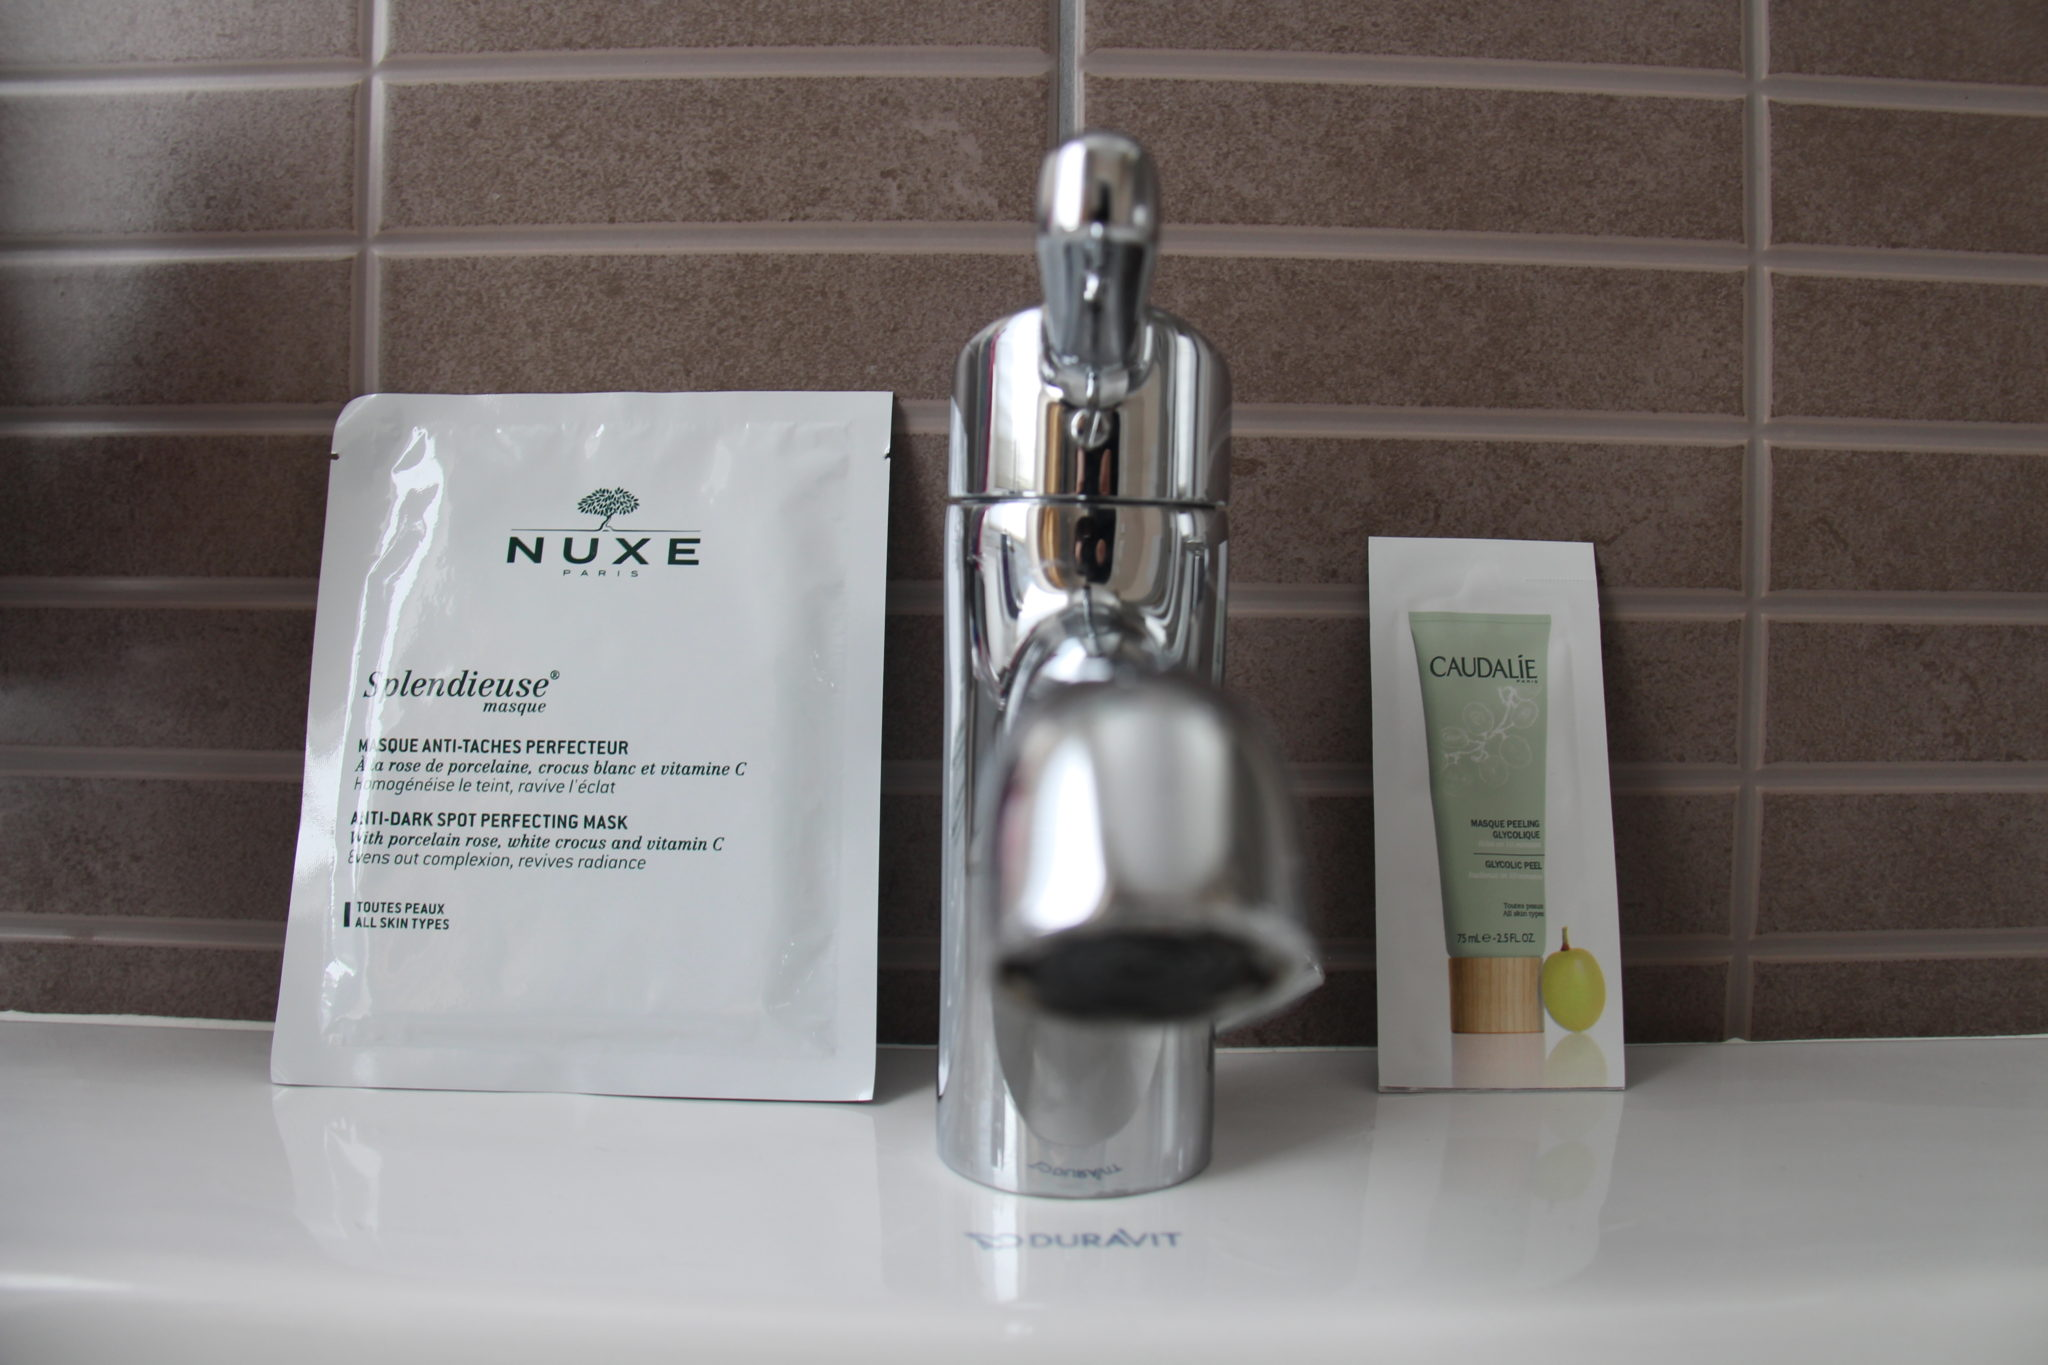 nuxe splendieuse masque caudalie acide glycolique